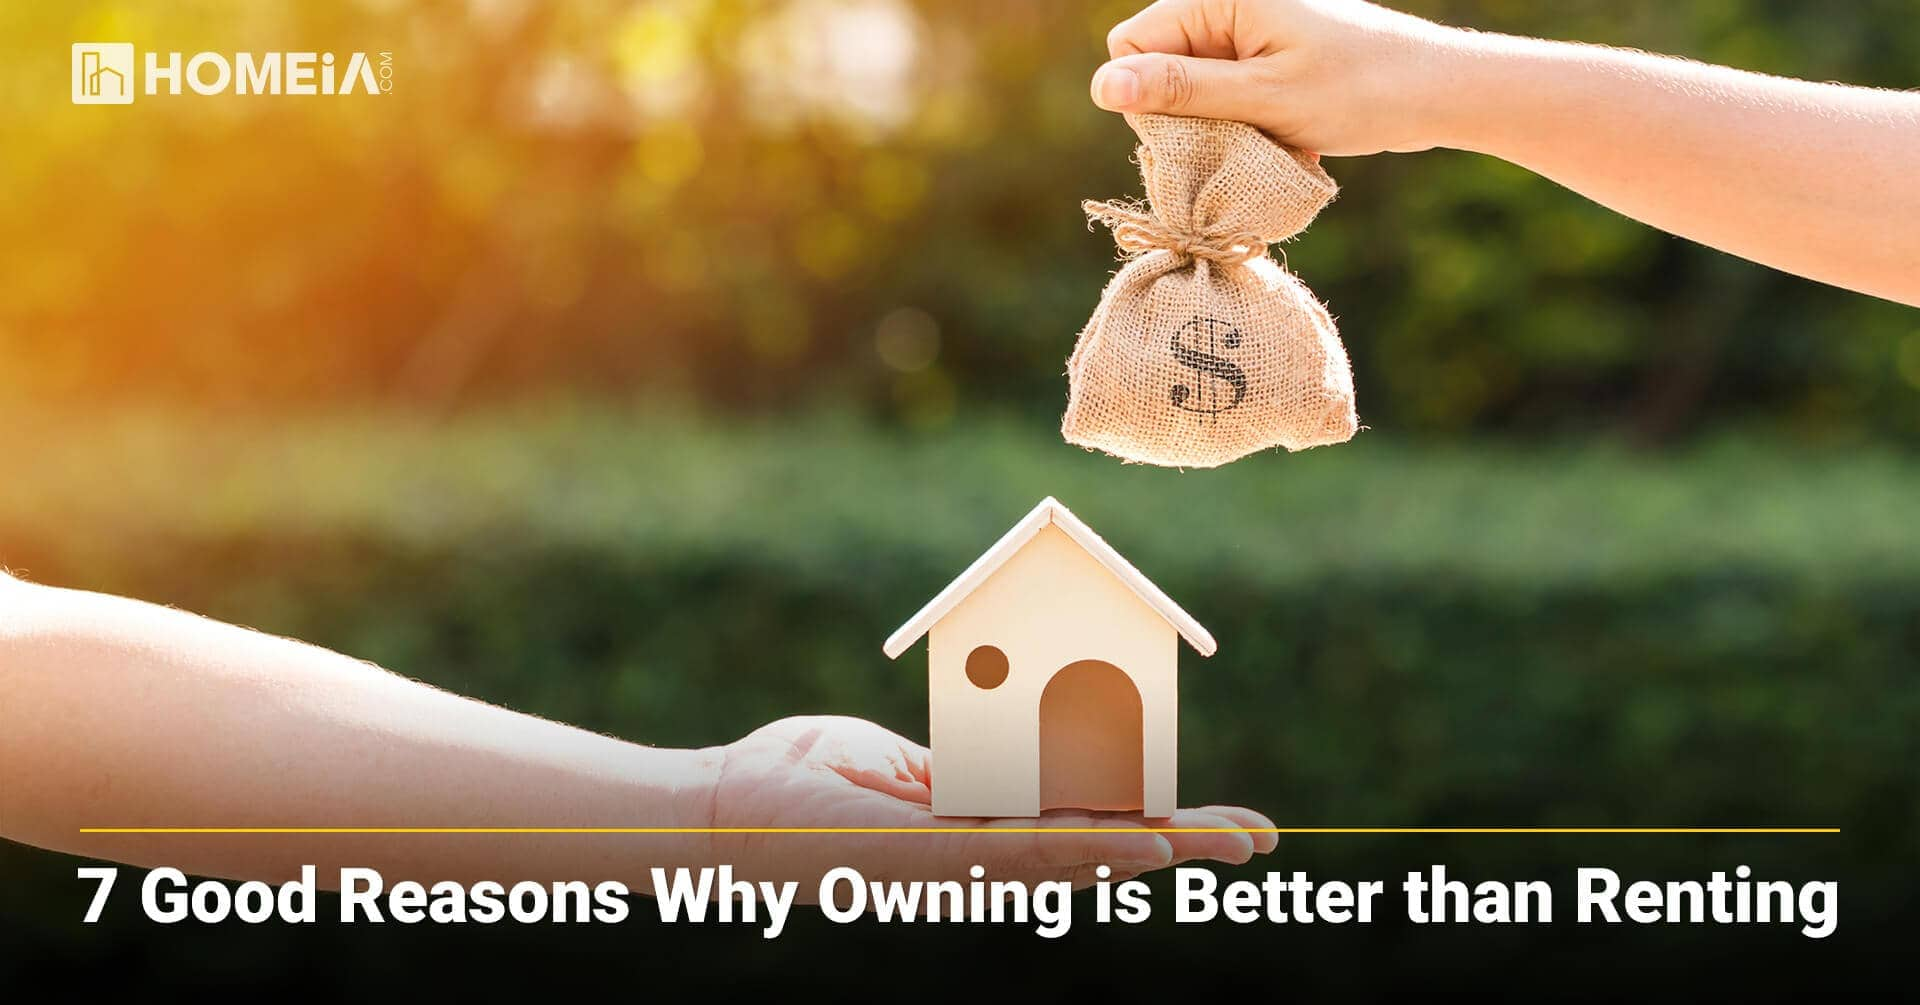 7 Good Reasons Why Owning is Better than Renting